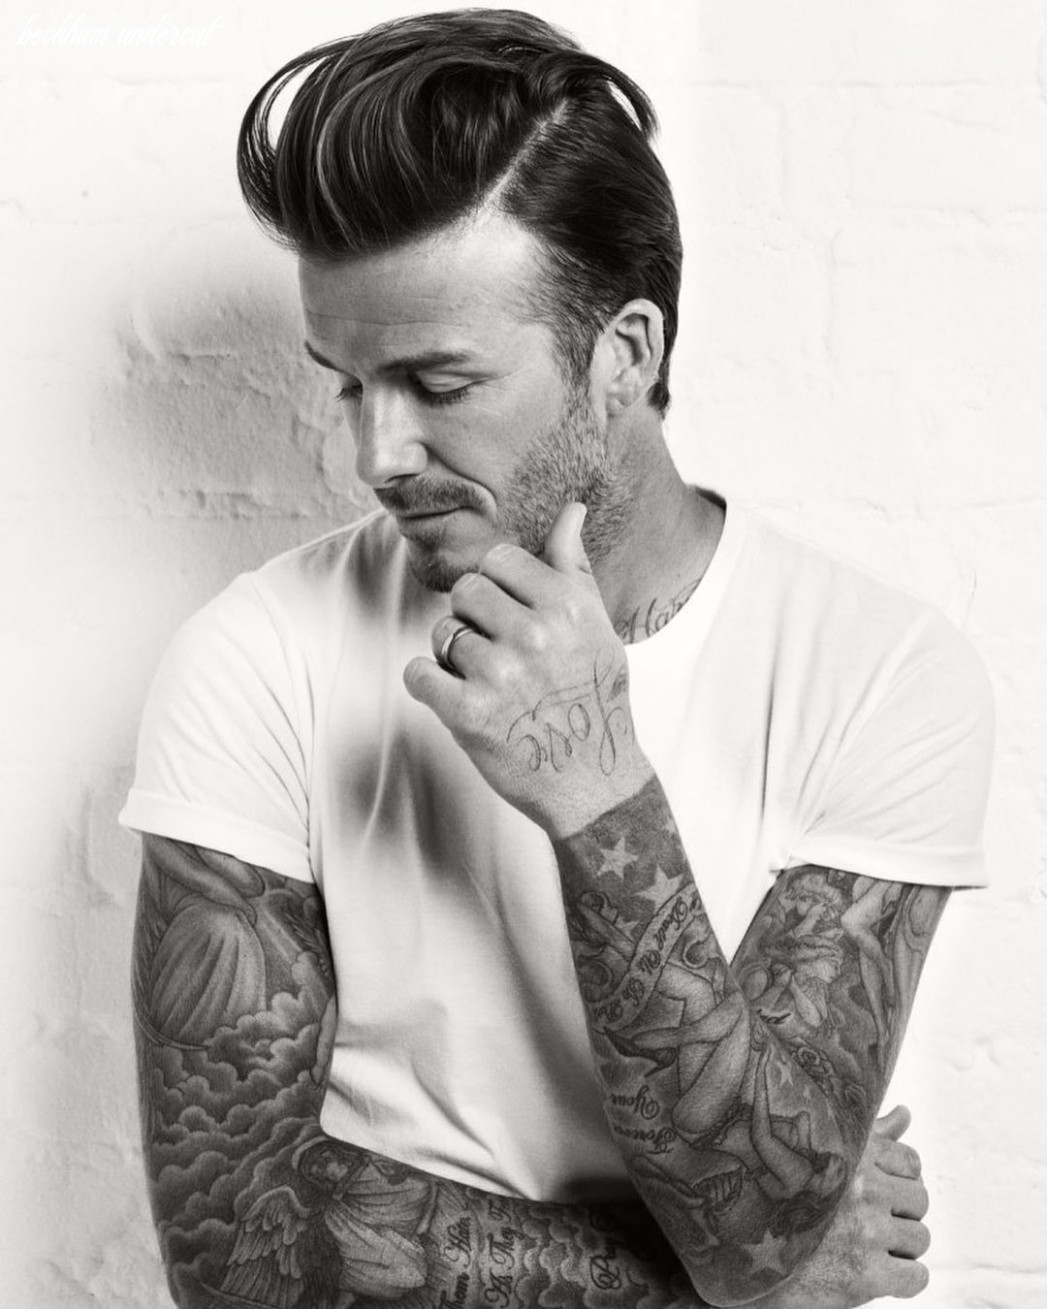 David beckham | david beckham, undercut hairstyles, celebrity